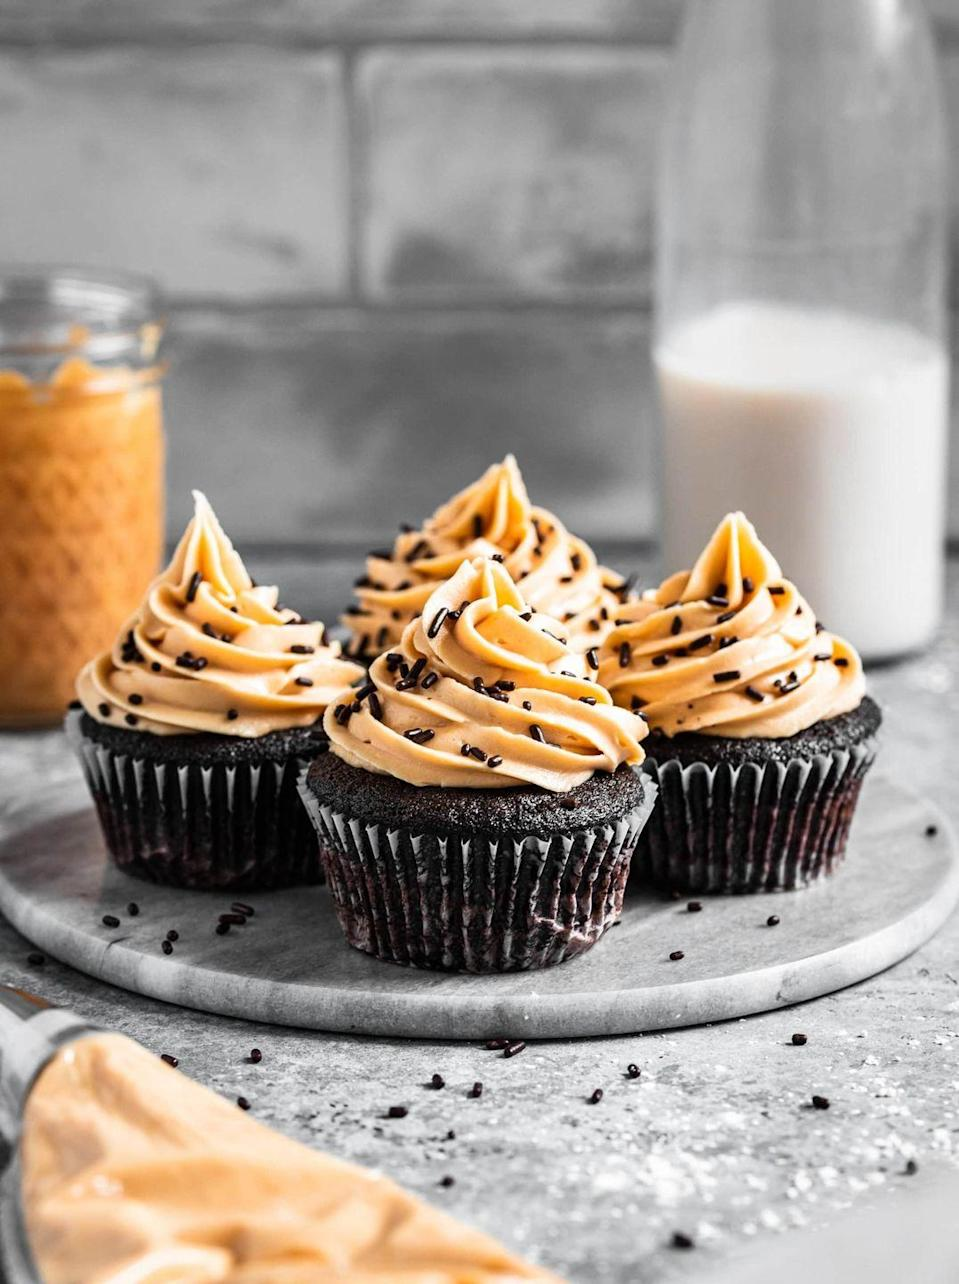 """<p>Make this small batch recipe for peanut butter cupcakes. It's the perfect treat after your romantic dinner.</p><p><strong>Get the recipe at <a href=""""https://mikebakesnyc.com/small-batch-chocolate-cupcakes/"""" rel=""""nofollow noopener"""" target=""""_blank"""" data-ylk=""""slk:Mike Bakes NYC"""" class=""""link rapid-noclick-resp"""">Mike Bakes NYC</a>.</strong></p><p><strong><a class=""""link rapid-noclick-resp"""" href=""""https://go.redirectingat.com?id=74968X1596630&url=https%3A%2F%2Fwww.walmart.com%2Fbrowse%2Fhome%2Fmeasuring-cups%2F4044_623679_8455465_3090752%3Ffacet%3Dbrand%253AThe%2BPioneer%2BWoman&sref=https%3A%2F%2Fwww.thepioneerwoman.com%2Ffood-cooking%2Fmeals-menus%2Fg35139389%2Fvalentines-day-cupcake-ideas%2F"""" rel=""""nofollow noopener"""" target=""""_blank"""" data-ylk=""""slk:SHOP MEASURING TOOLS"""">SHOP MEASURING TOOLS</a><br></strong></p>"""